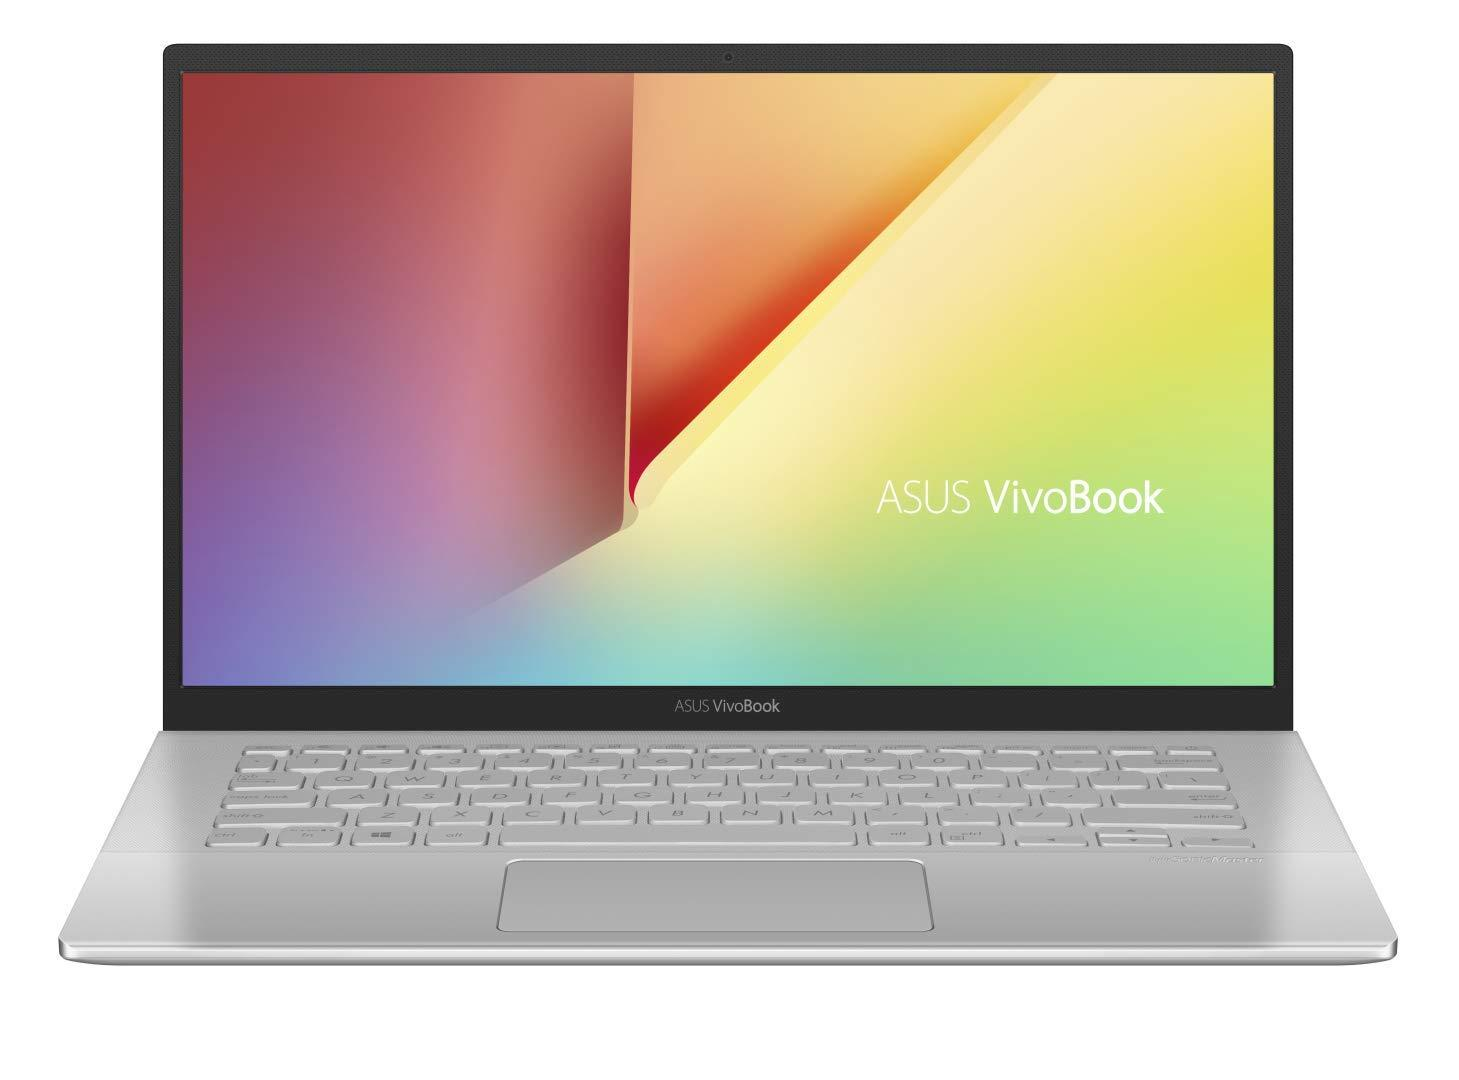 Ordinateur portable Asus VivoBook S412DA-EK005T Argent - AMD Ryzen, NumPad - photo 2